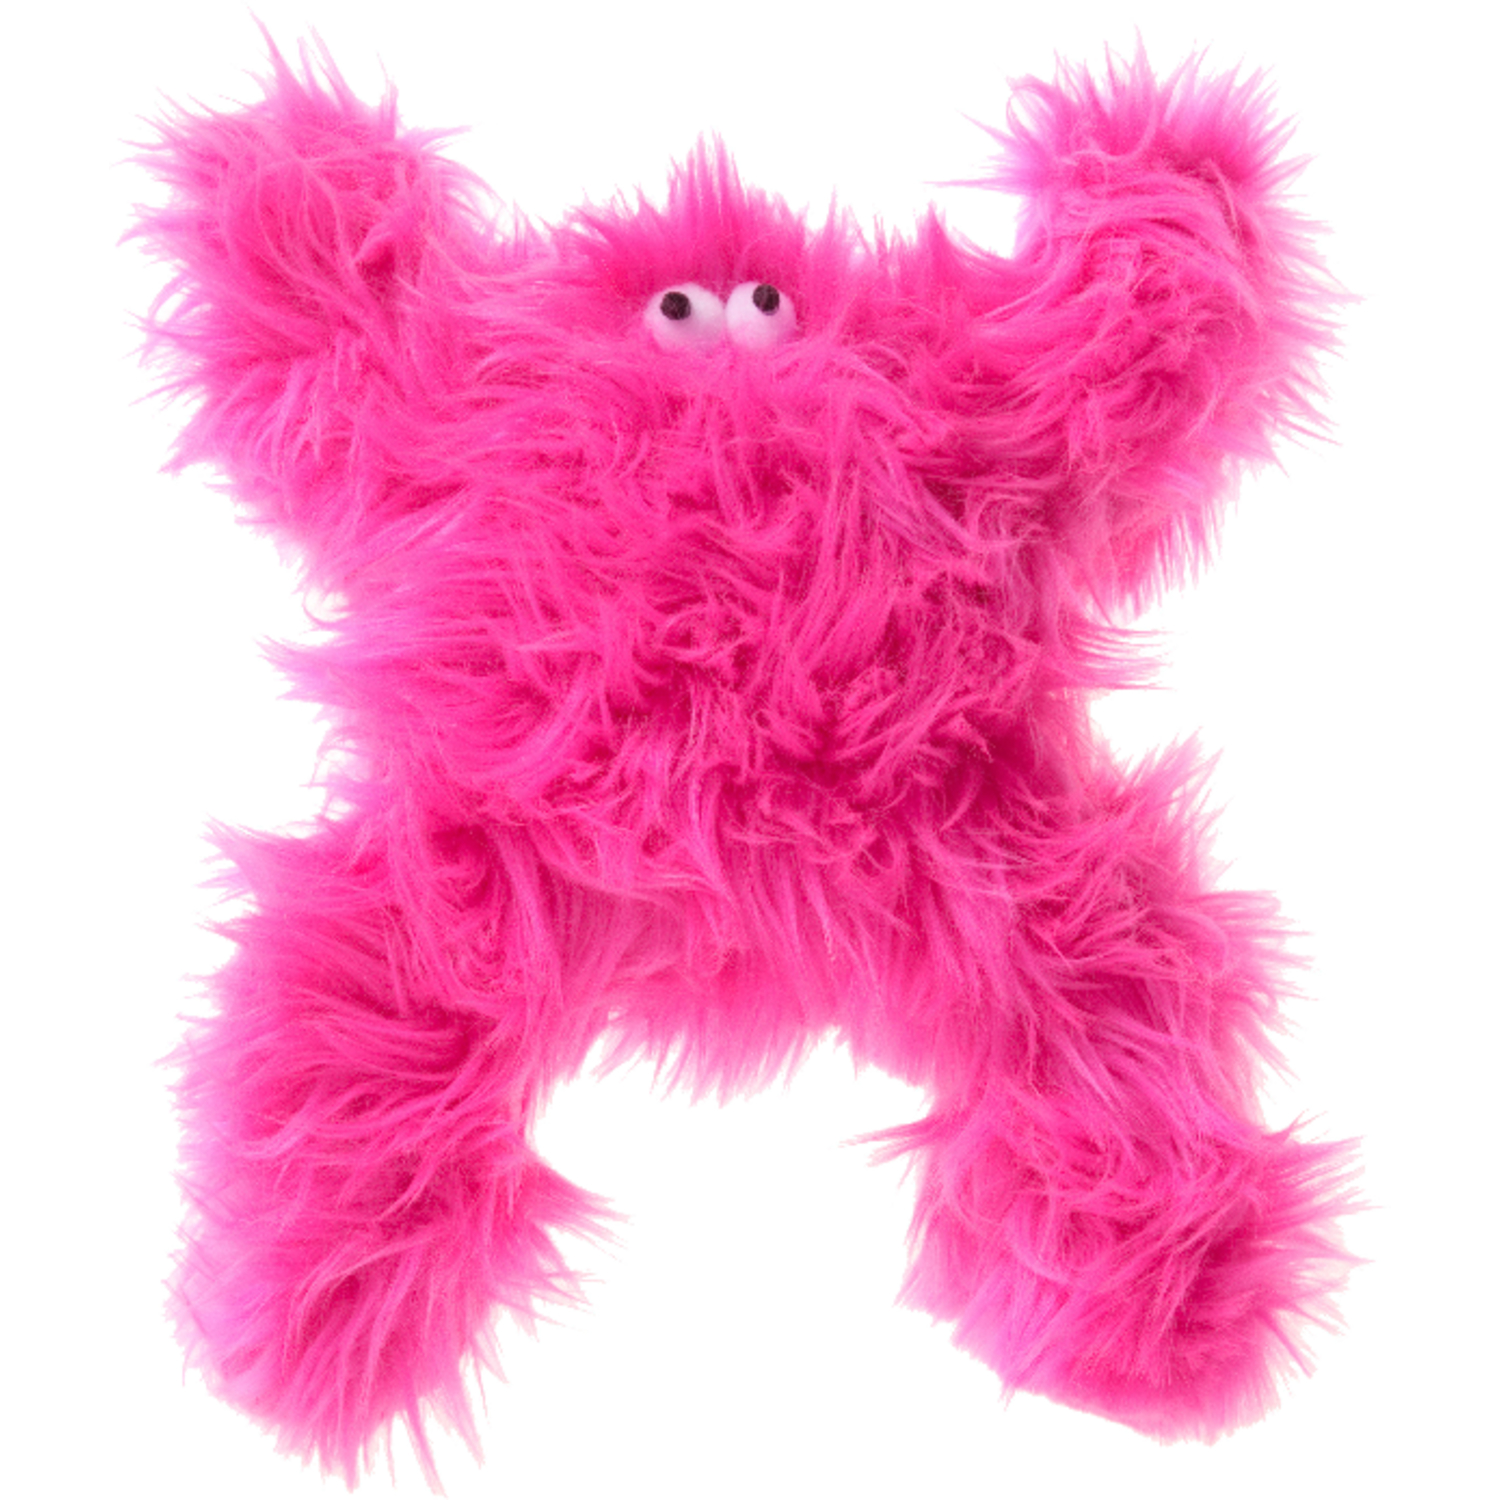 West Paw  Hot Pink  Plush  Squeaky Dog Toy  Boogey  Large